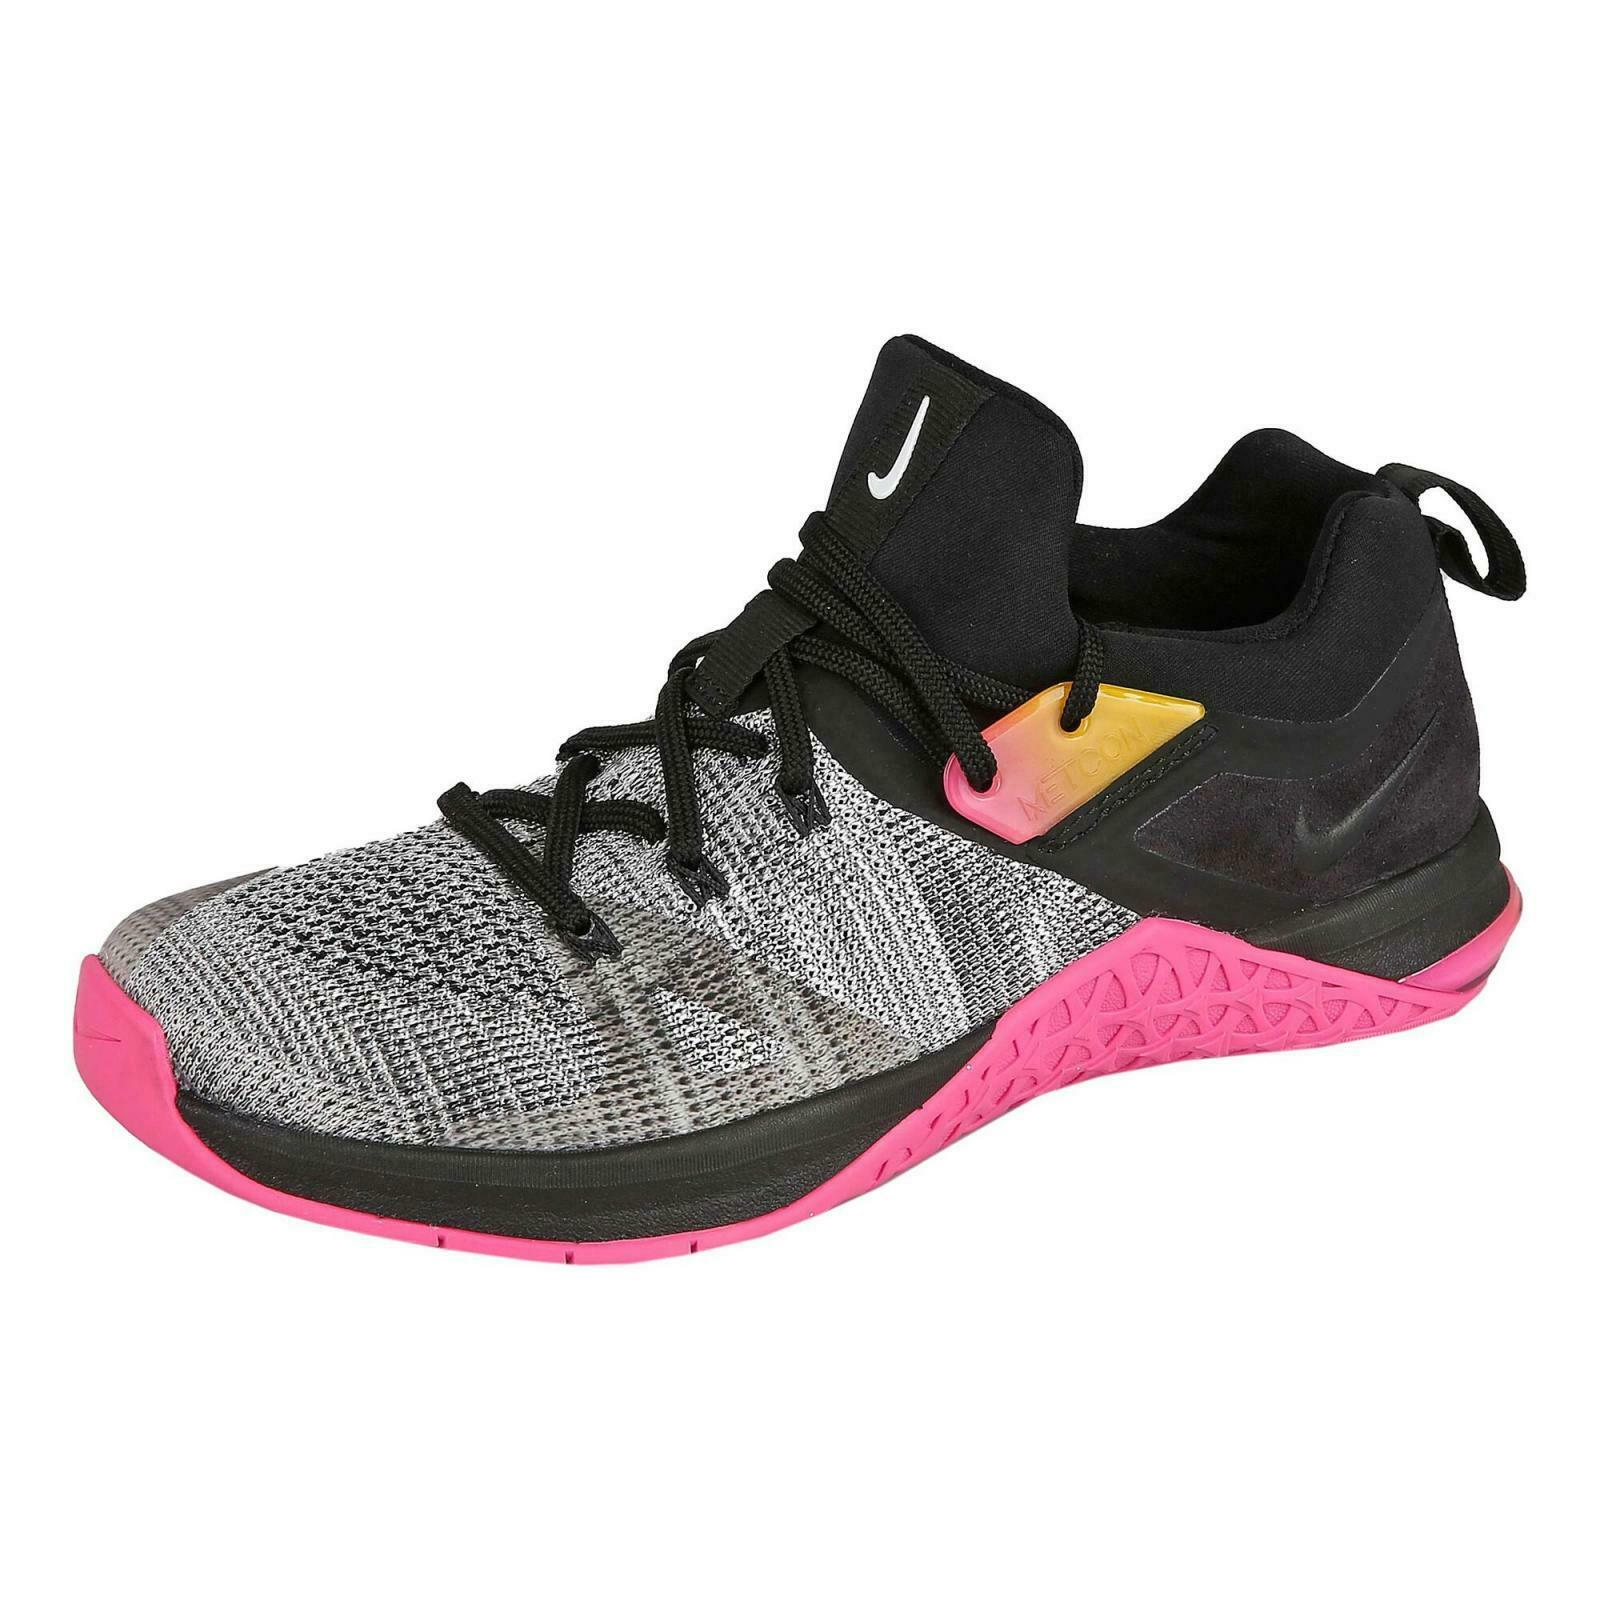 Women's Nike Metcon Flyknit 3 Shoes.    UK11.5 US14 EUR47.    AR5623-002.